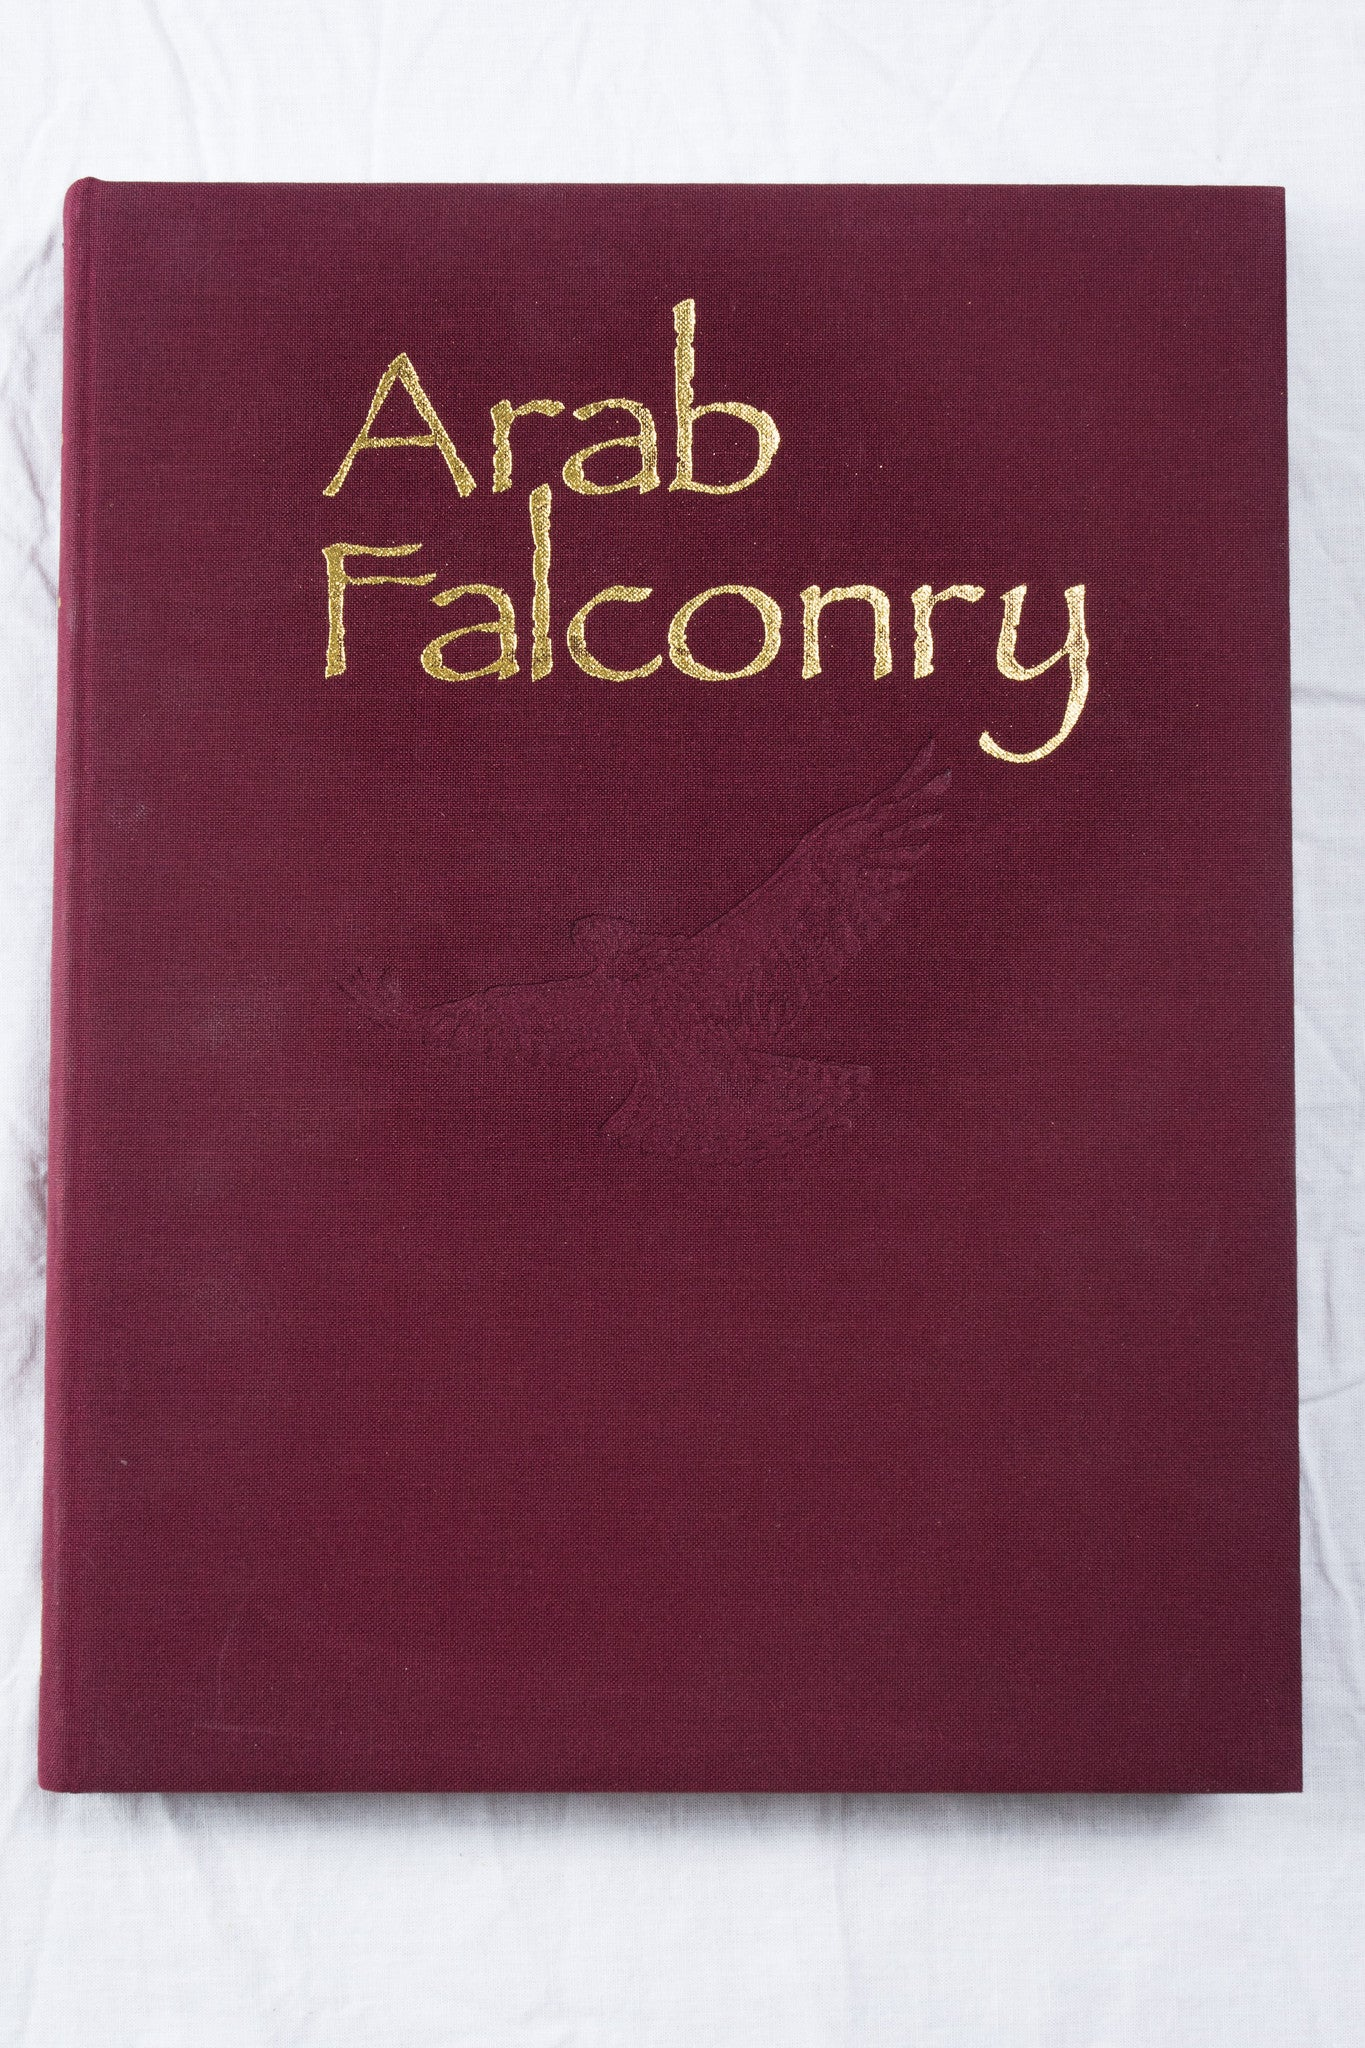 Arab Falconry: history of a way of life